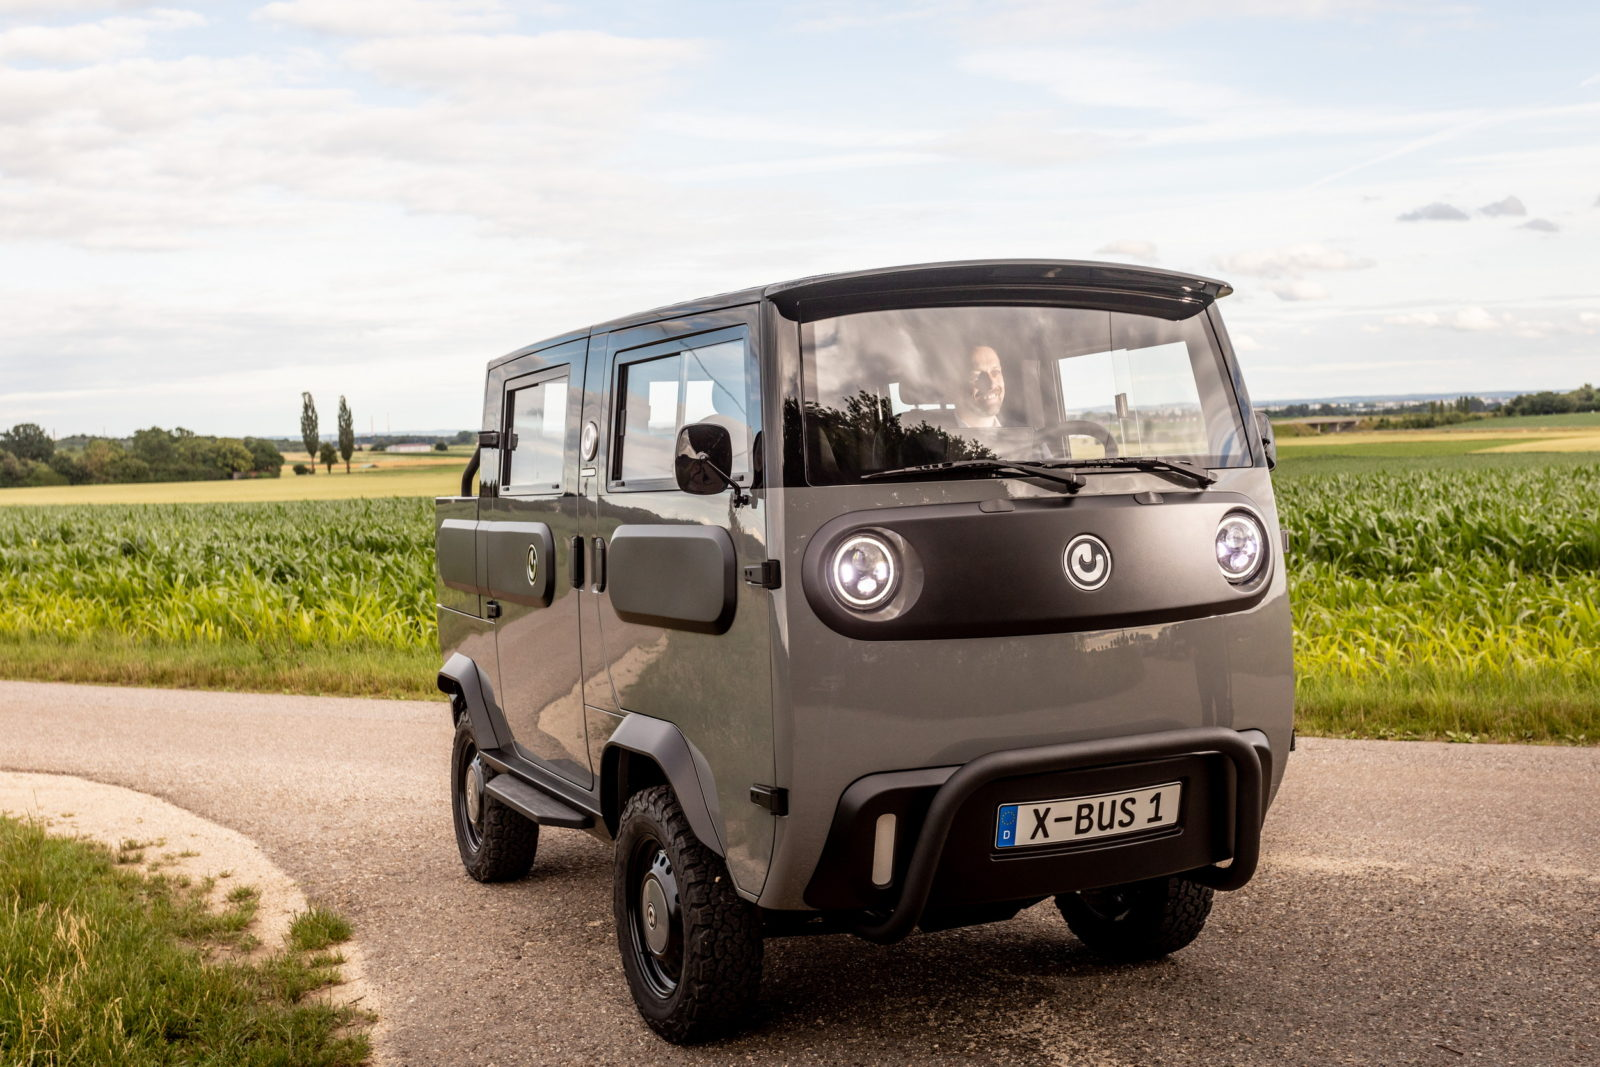 xbus-may-be-most-modular,-hard-working,-off-road-ev-you'll-ever-see:-even-a-camper